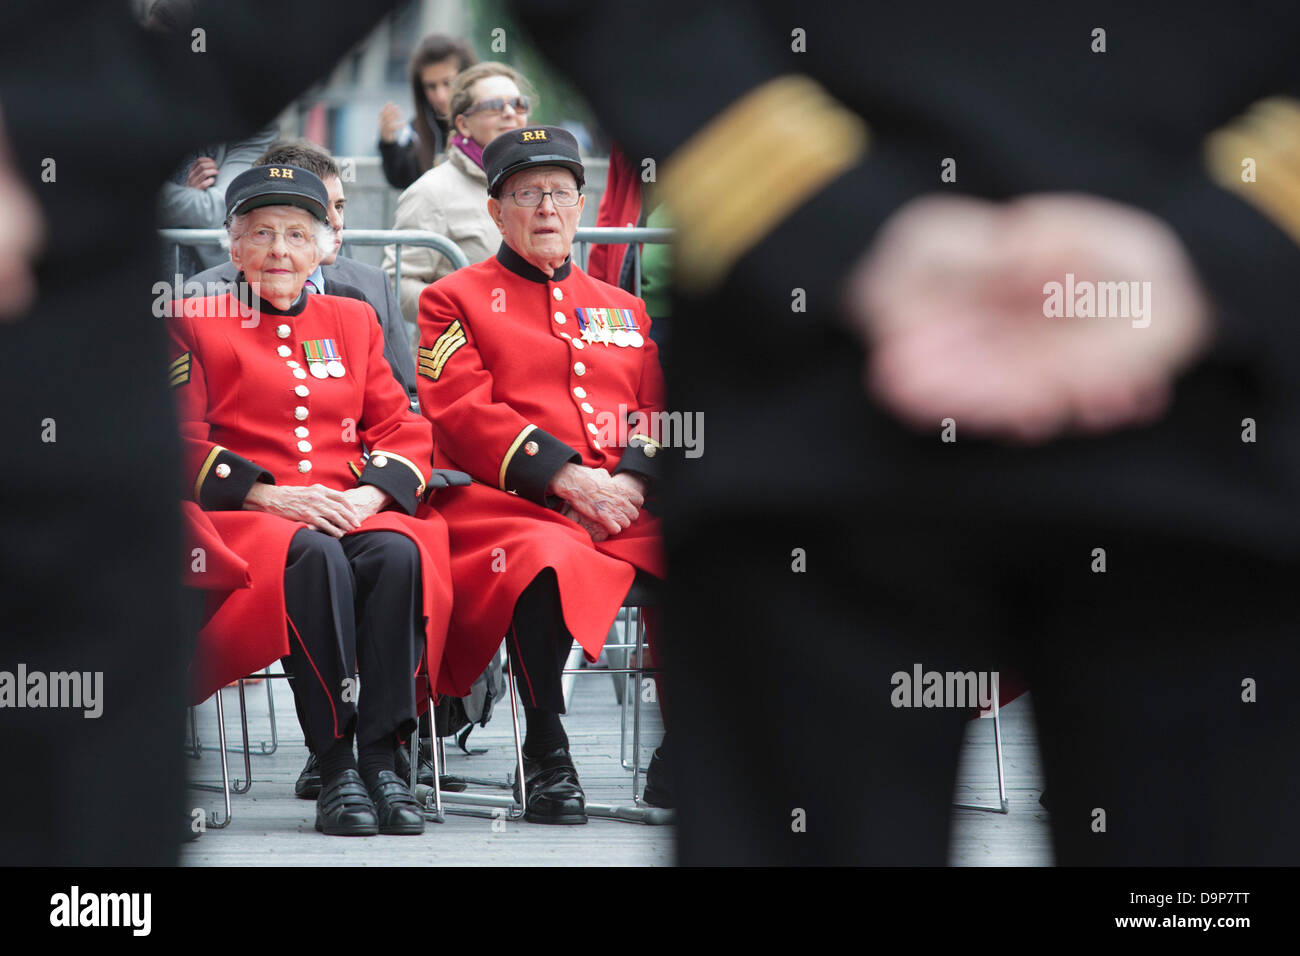 London, UK. 24 June 2013. Pictured: Chelsea Pensioners attend the ceremony. The Mayor of London, Boris Johnson, - Stock Image